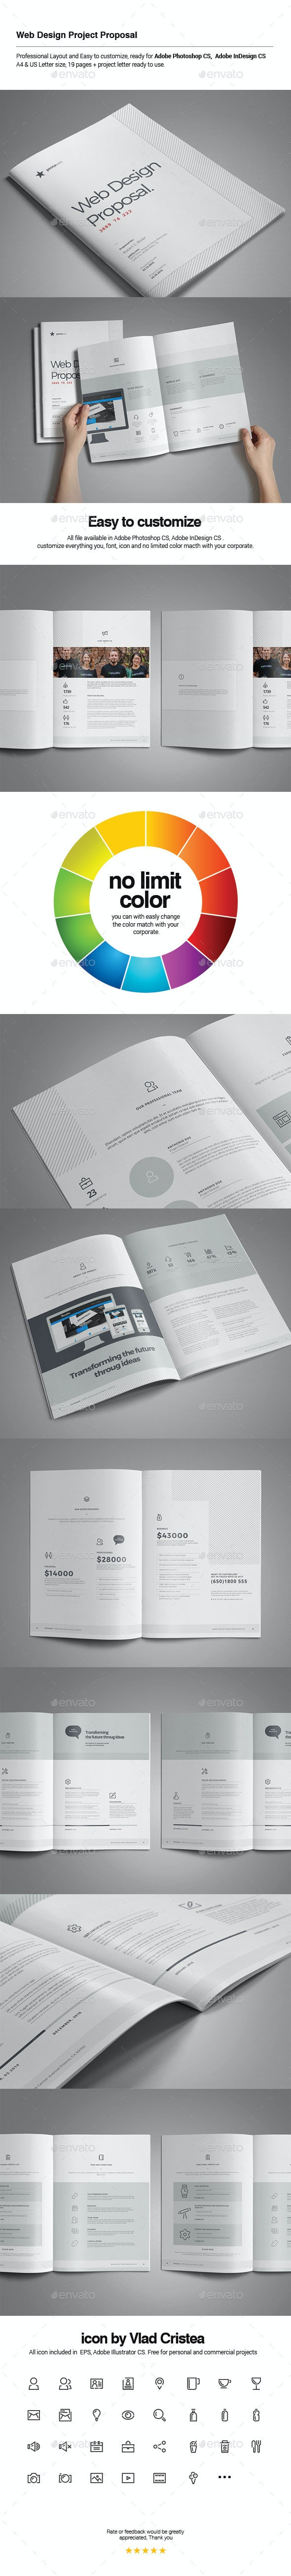 Web Design Proposal - Proposals & Invoices Stationery